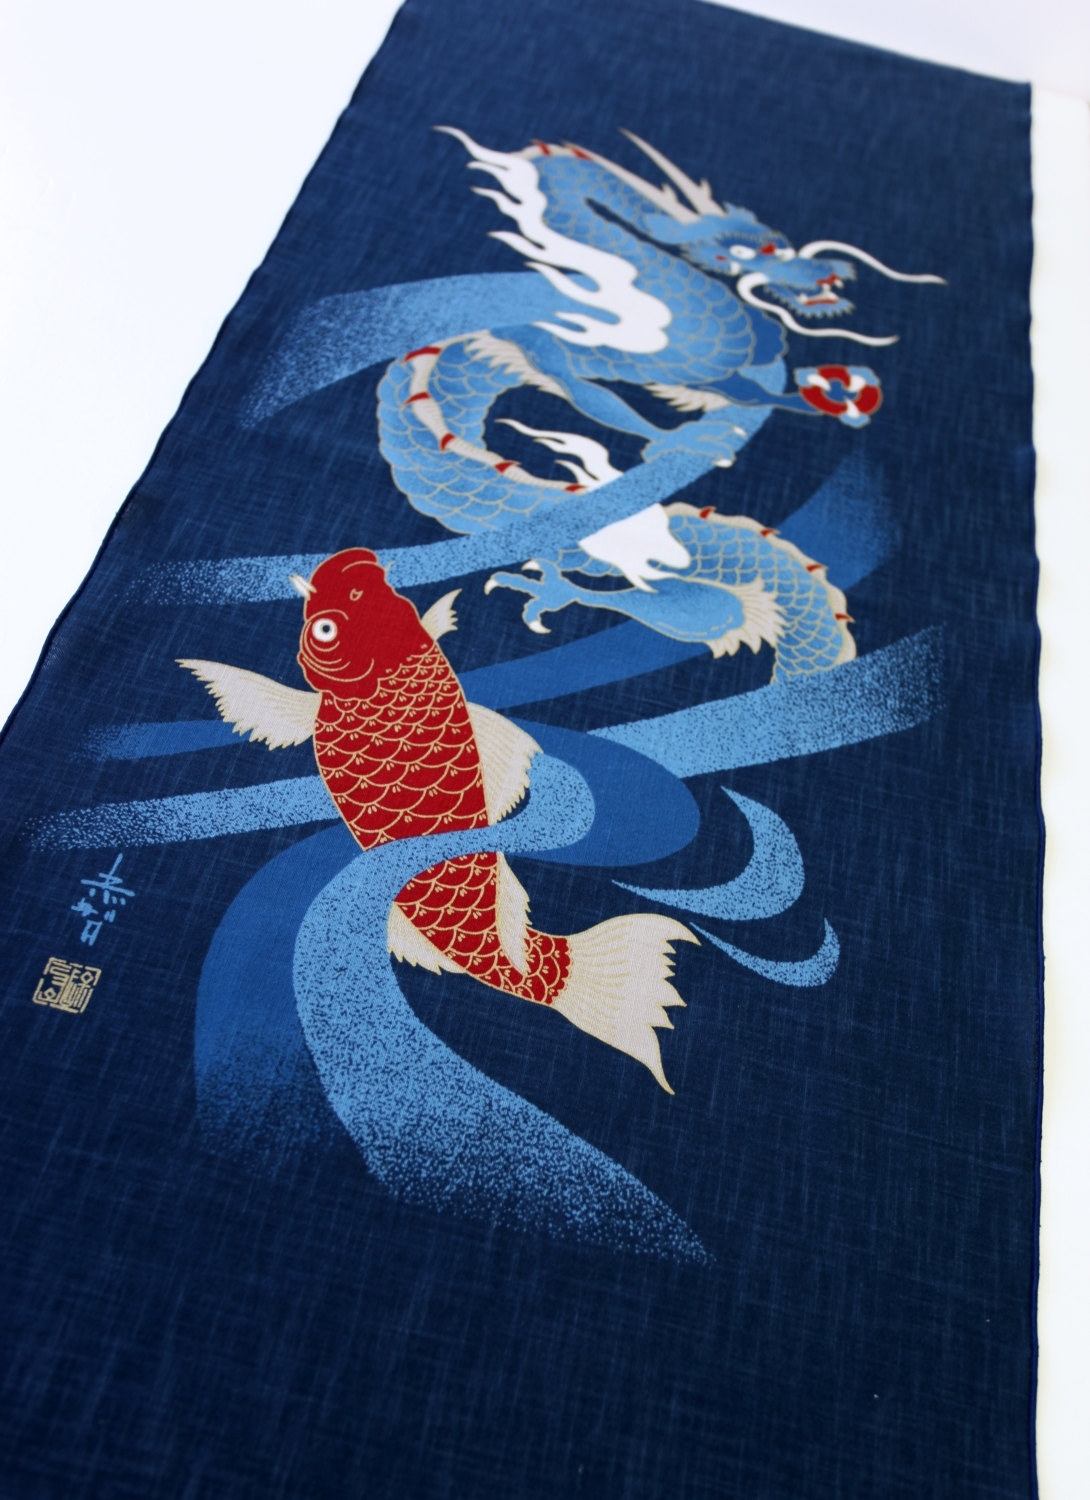 Japanese Indigo Blue Noren Panel, Geisha Noren Fabric Curtain With Regard To Latest Japanese Fabric Wall Art (View 15 of 15)